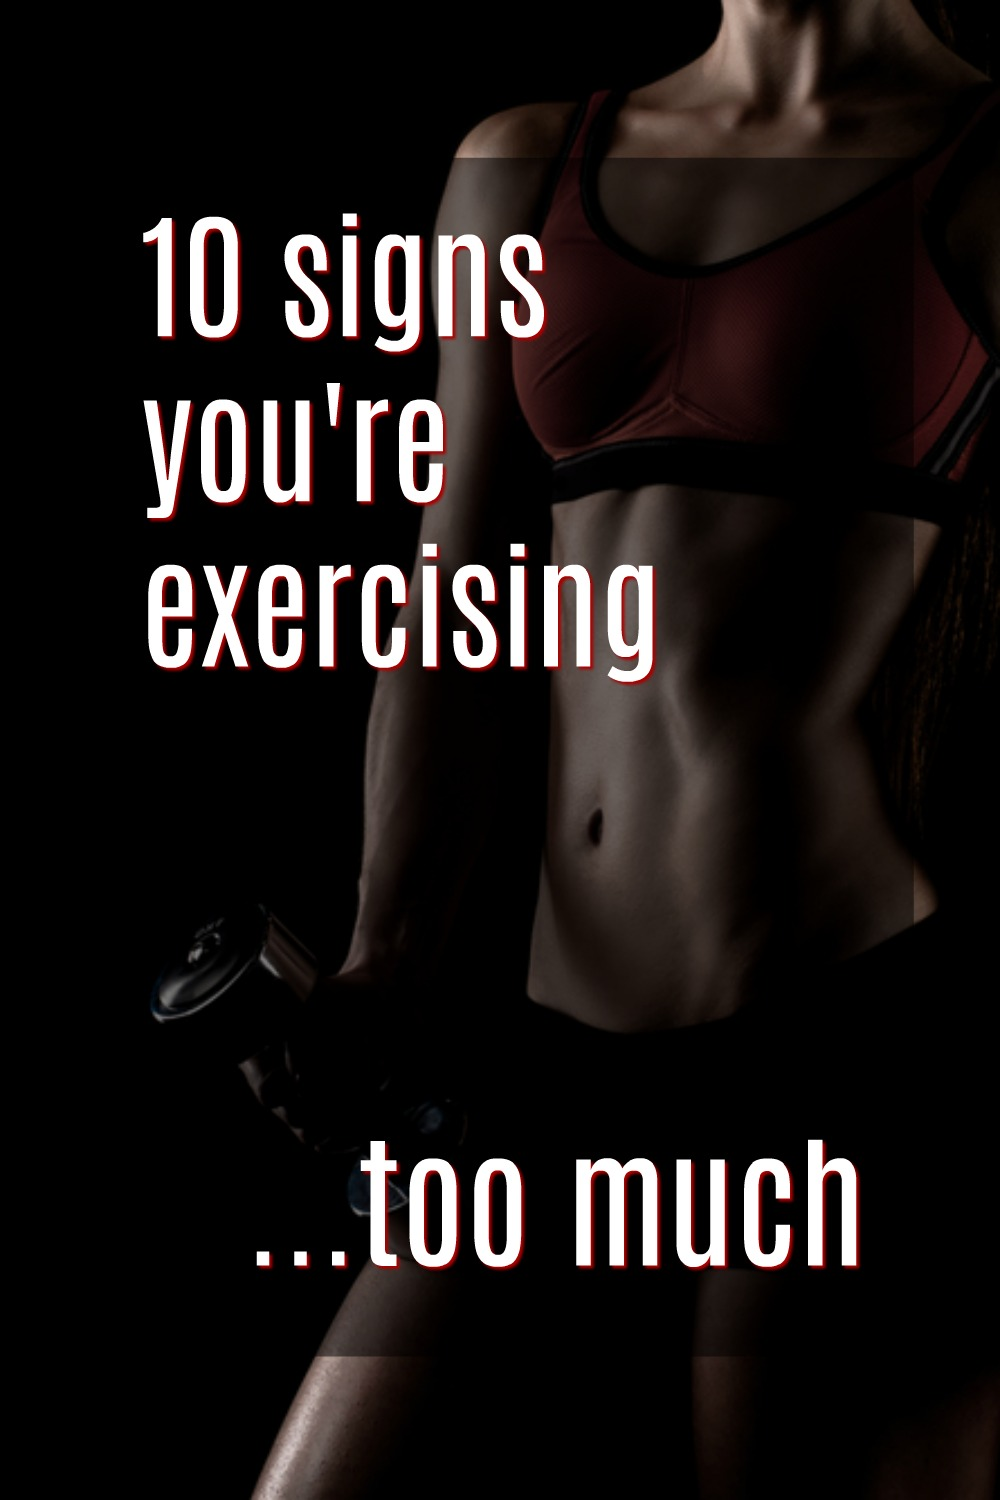 how much is too much when it comes to exercise